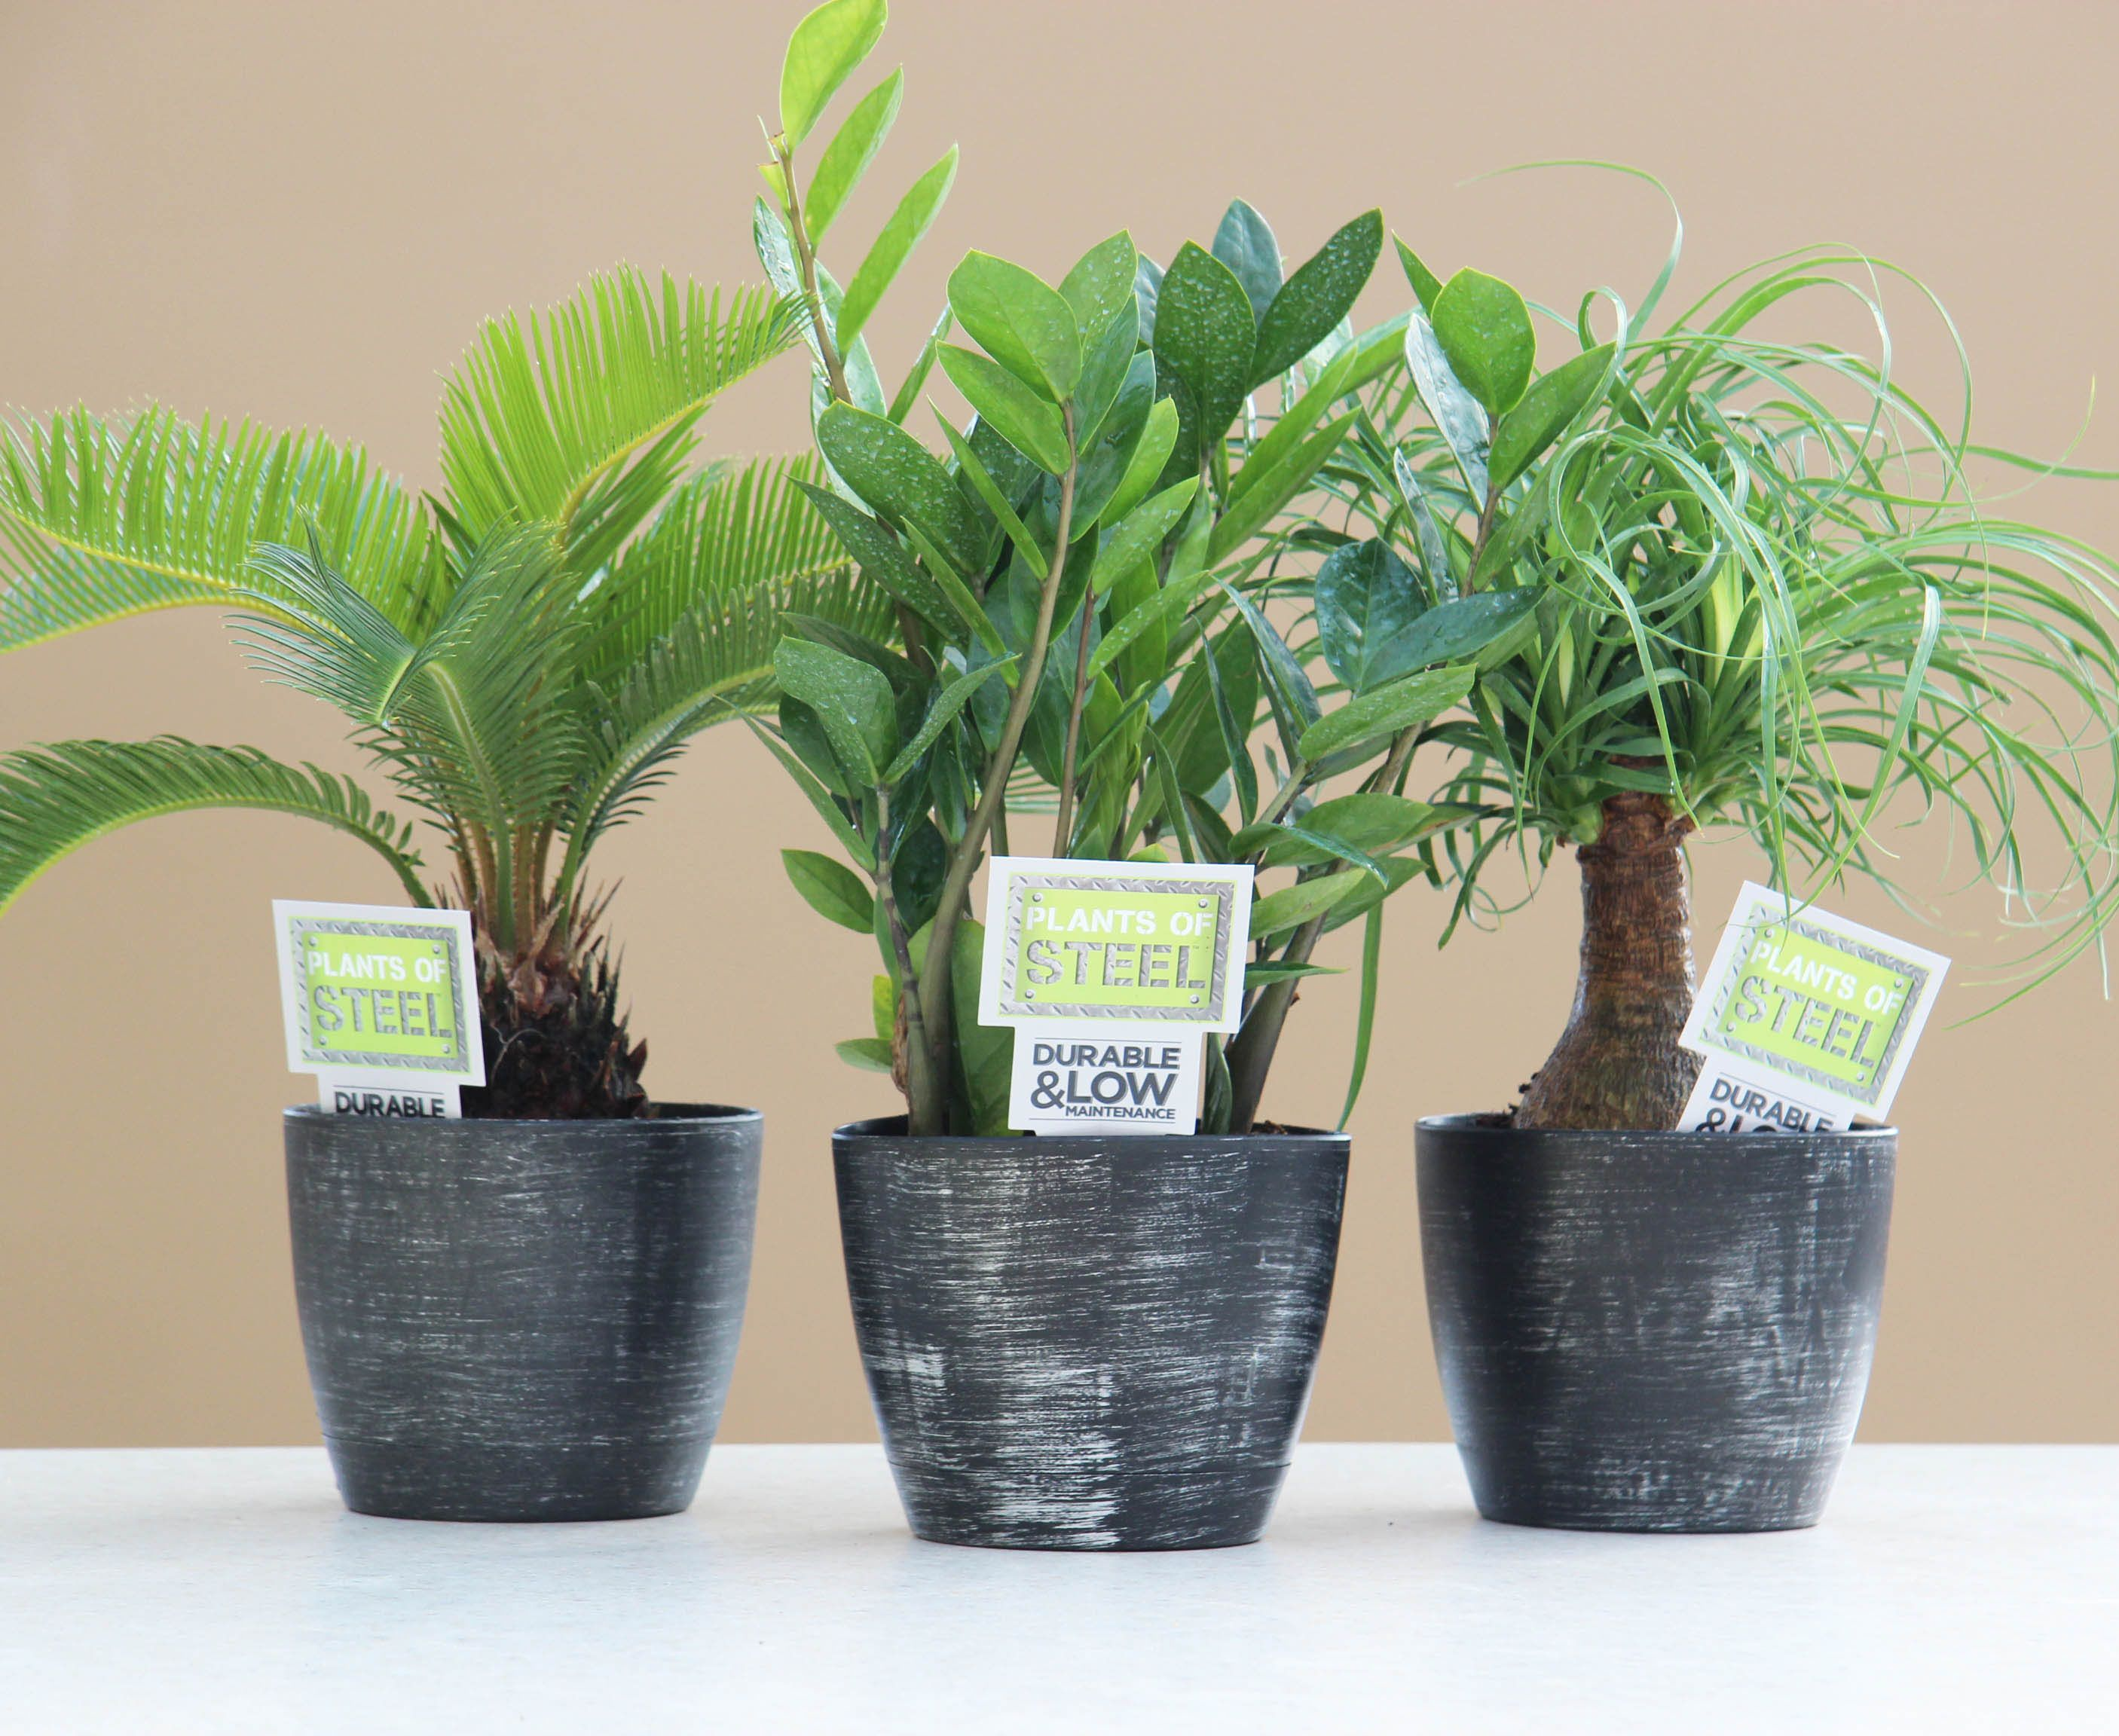 Plants of steel easy to care for house plants tropical for Indoor plants easy maintenance